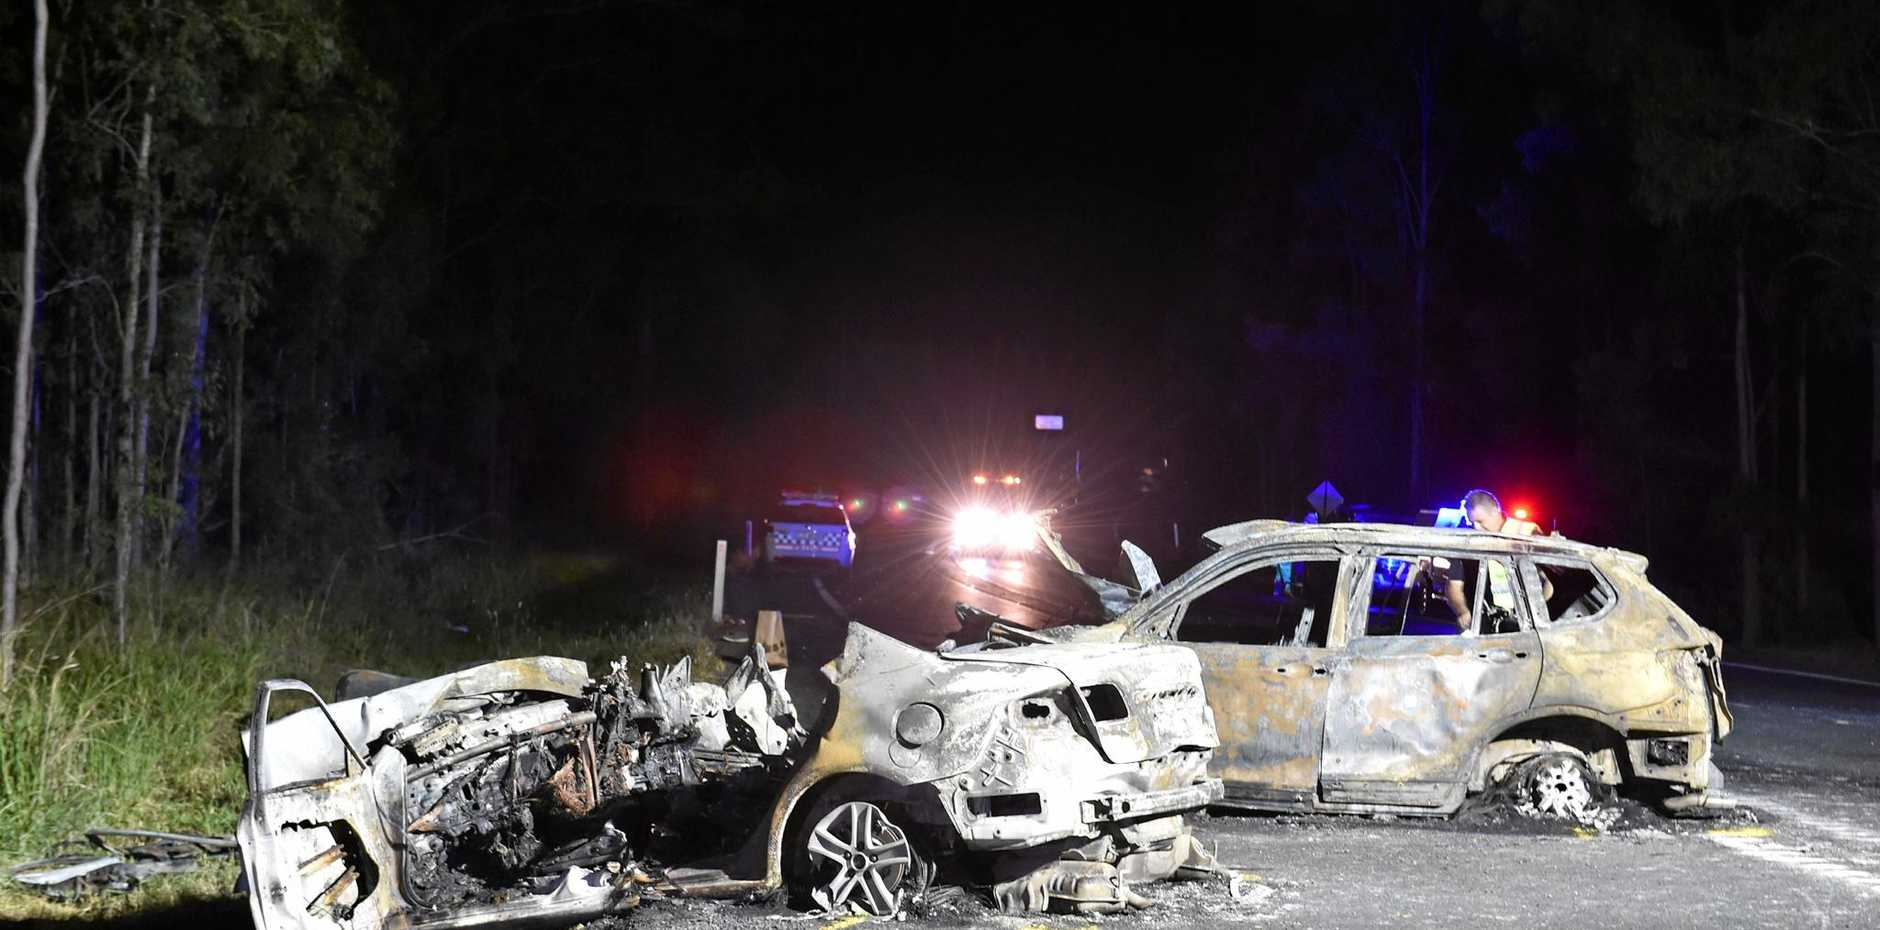 Crash investigators at the scene of the double fatality on the Bruce Hwy near Tiaro.